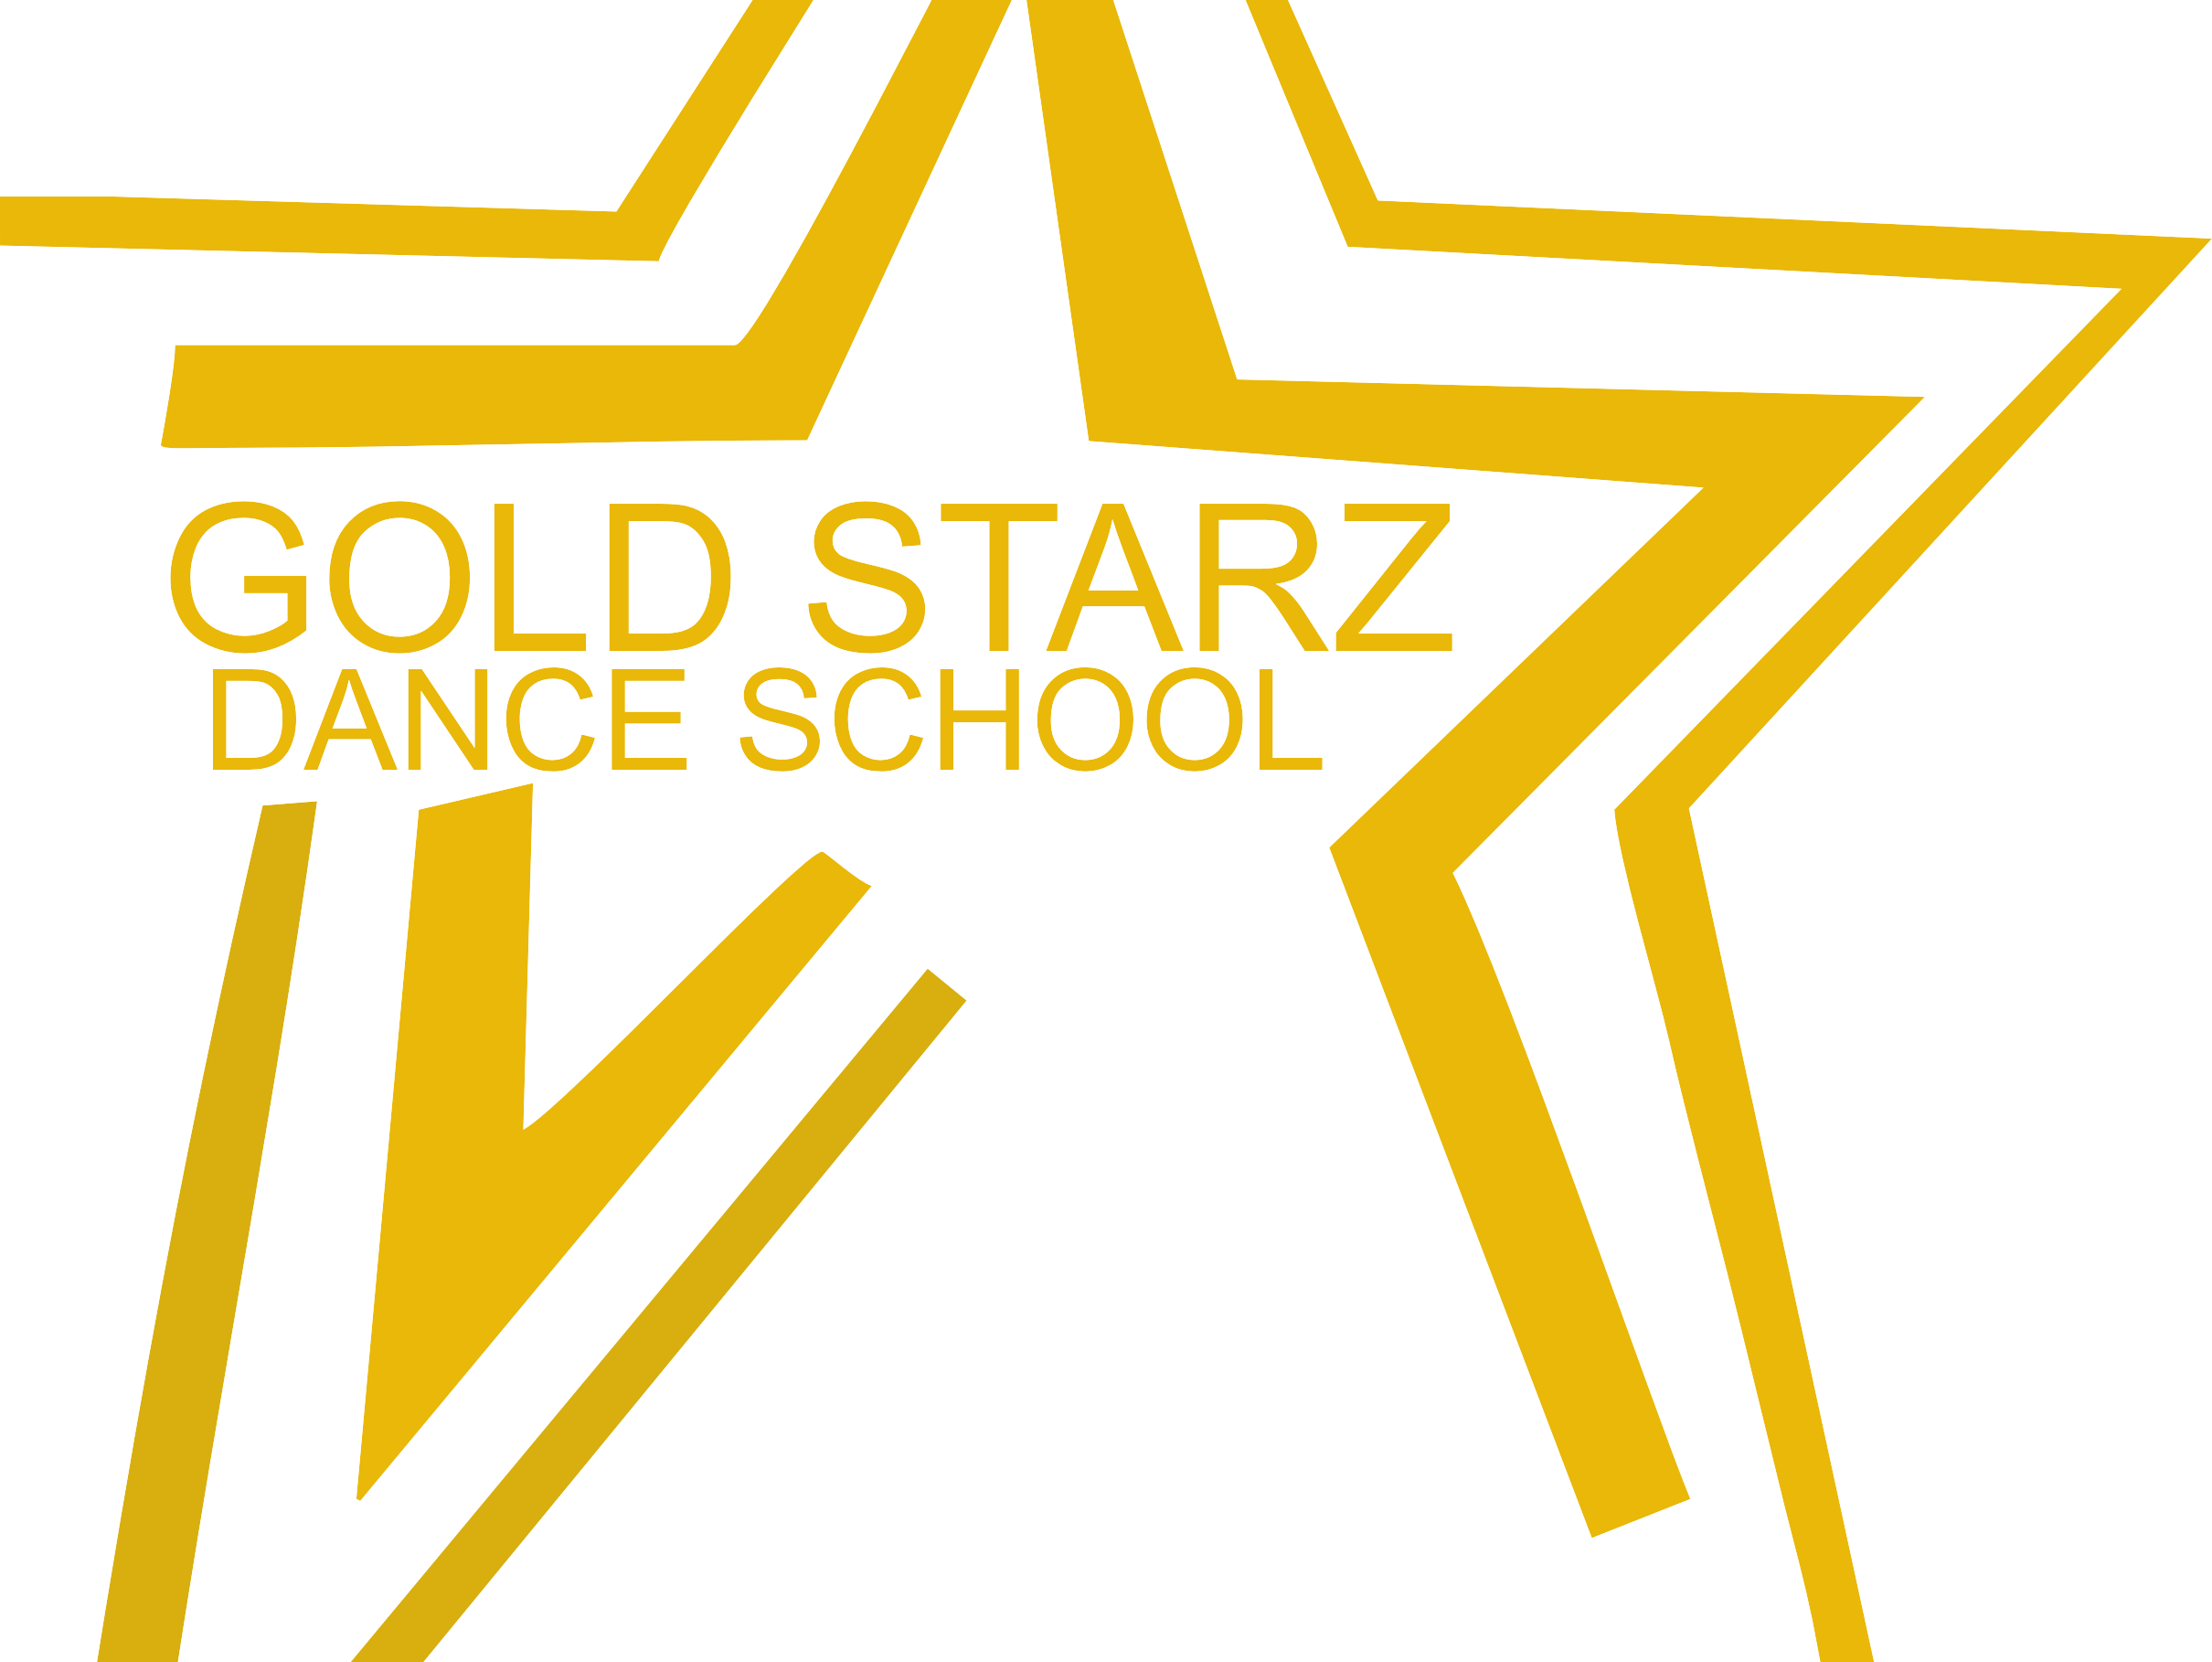 Gold Starz Dance School